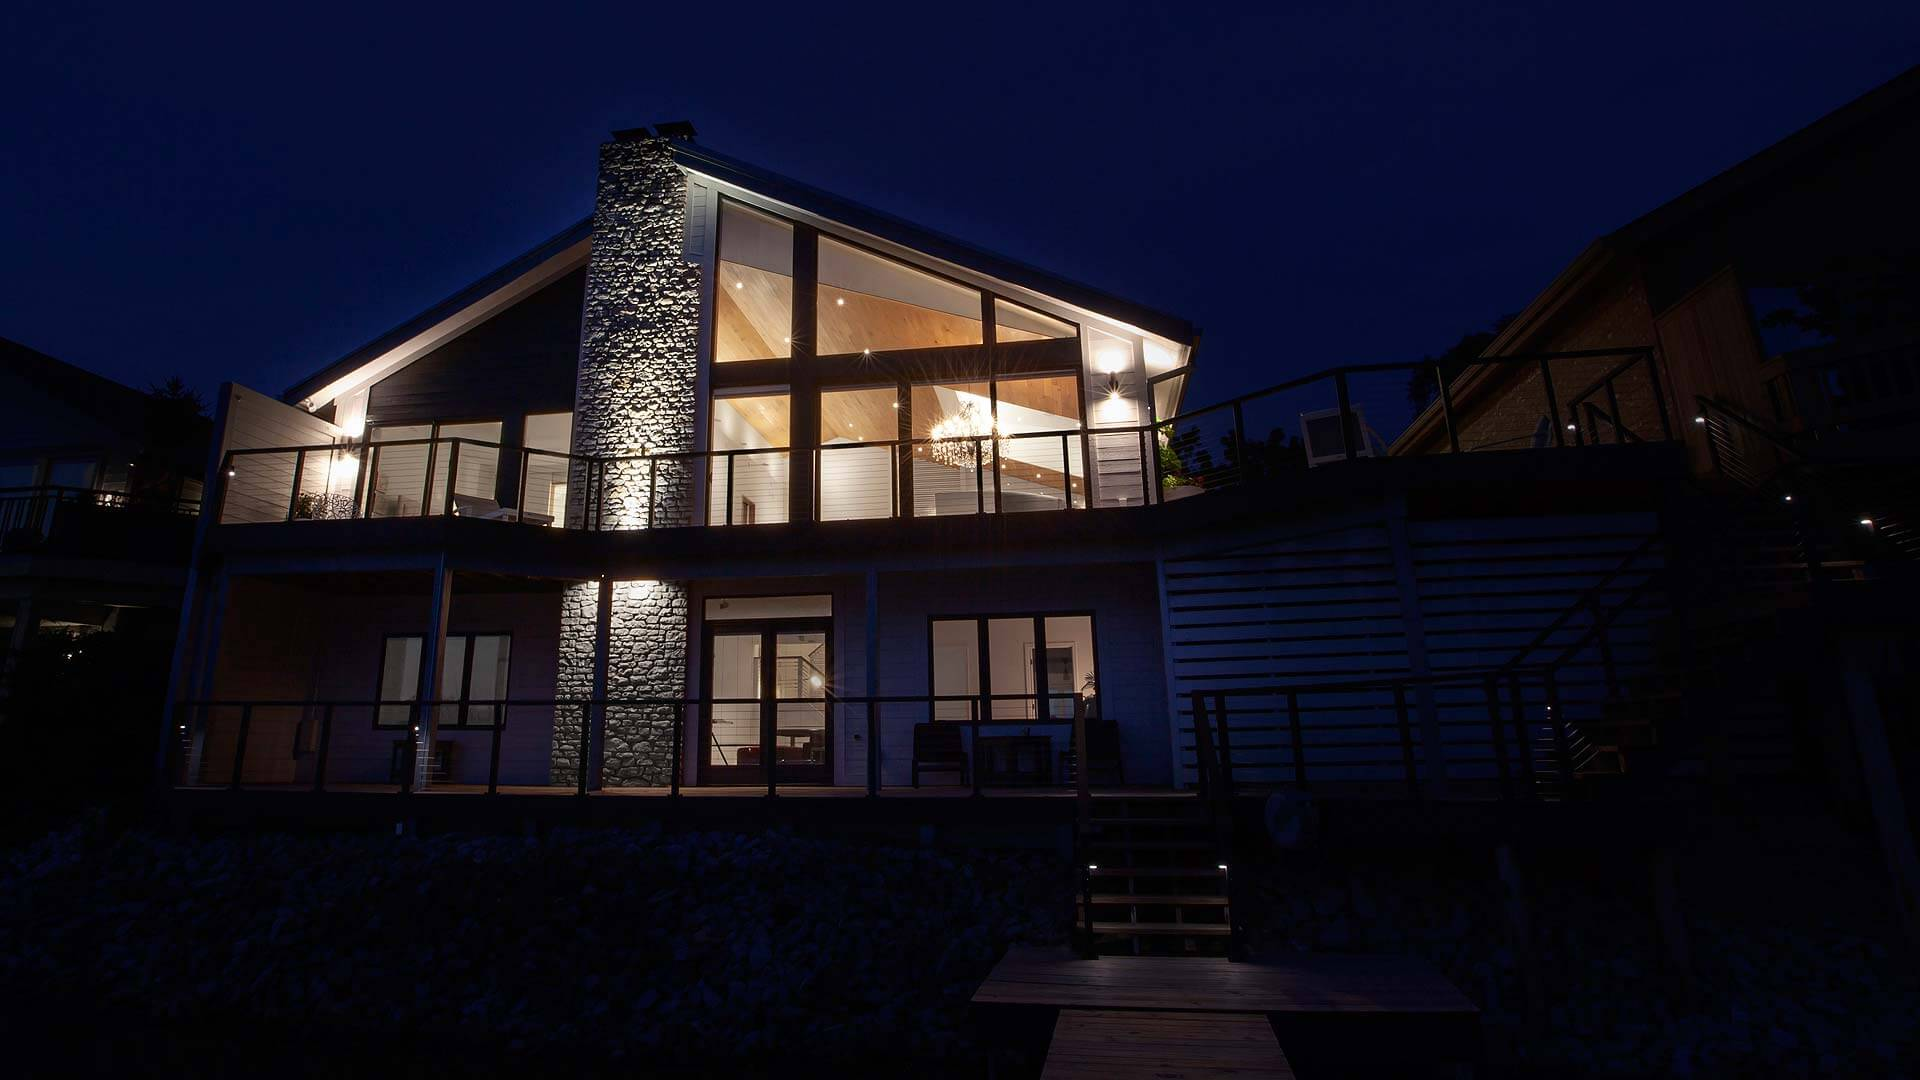 New renovation glows on view from lakeside - Modern Lakehouse Renovation - Clearwater